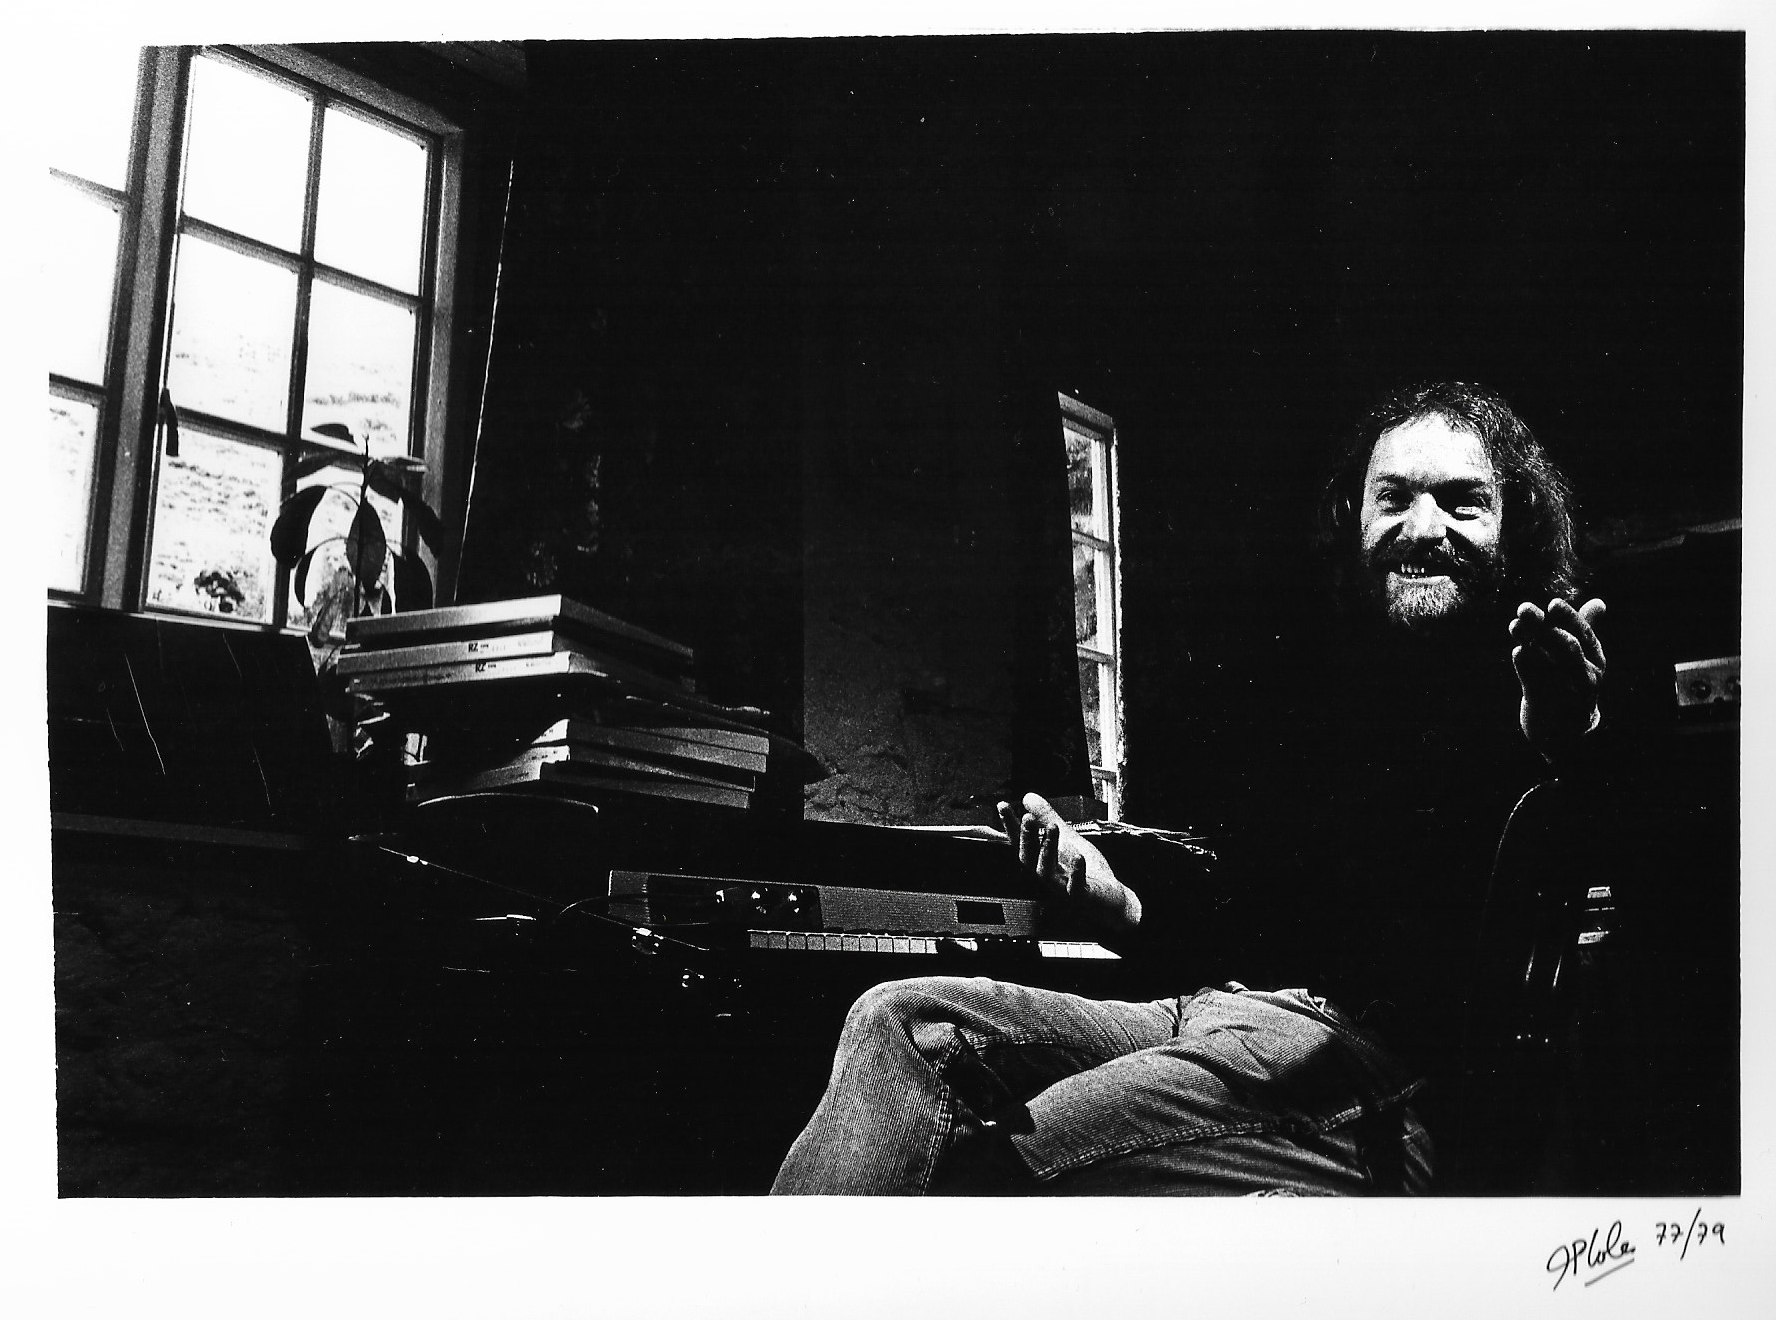 Taken at Neil's Youlgrave home in 1977 by John Coles